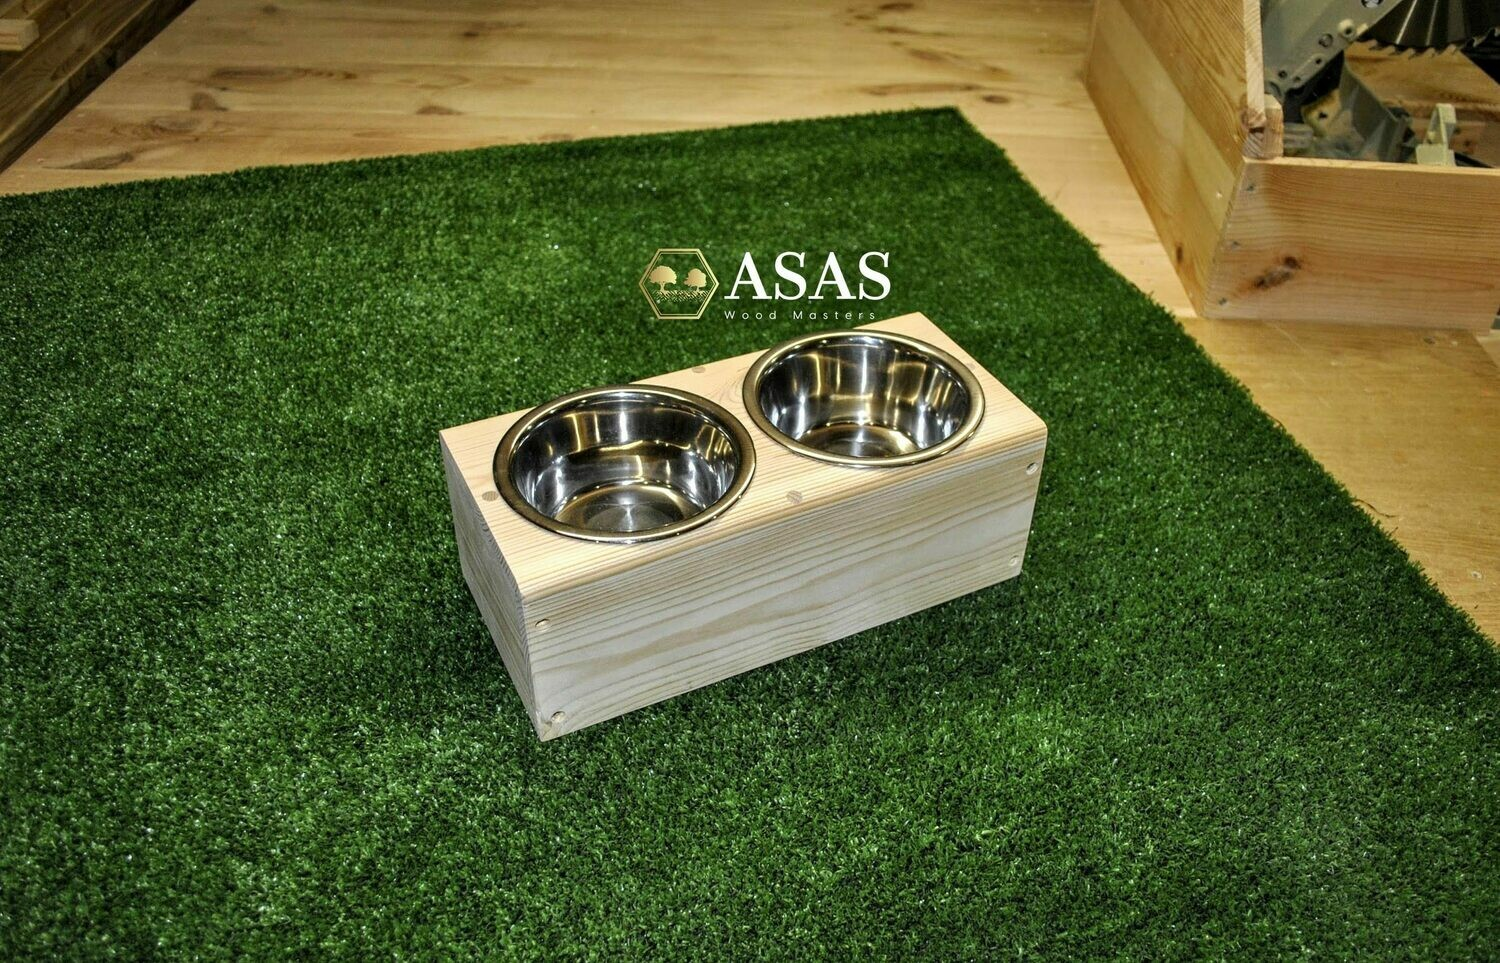 Food and Drink bowls station